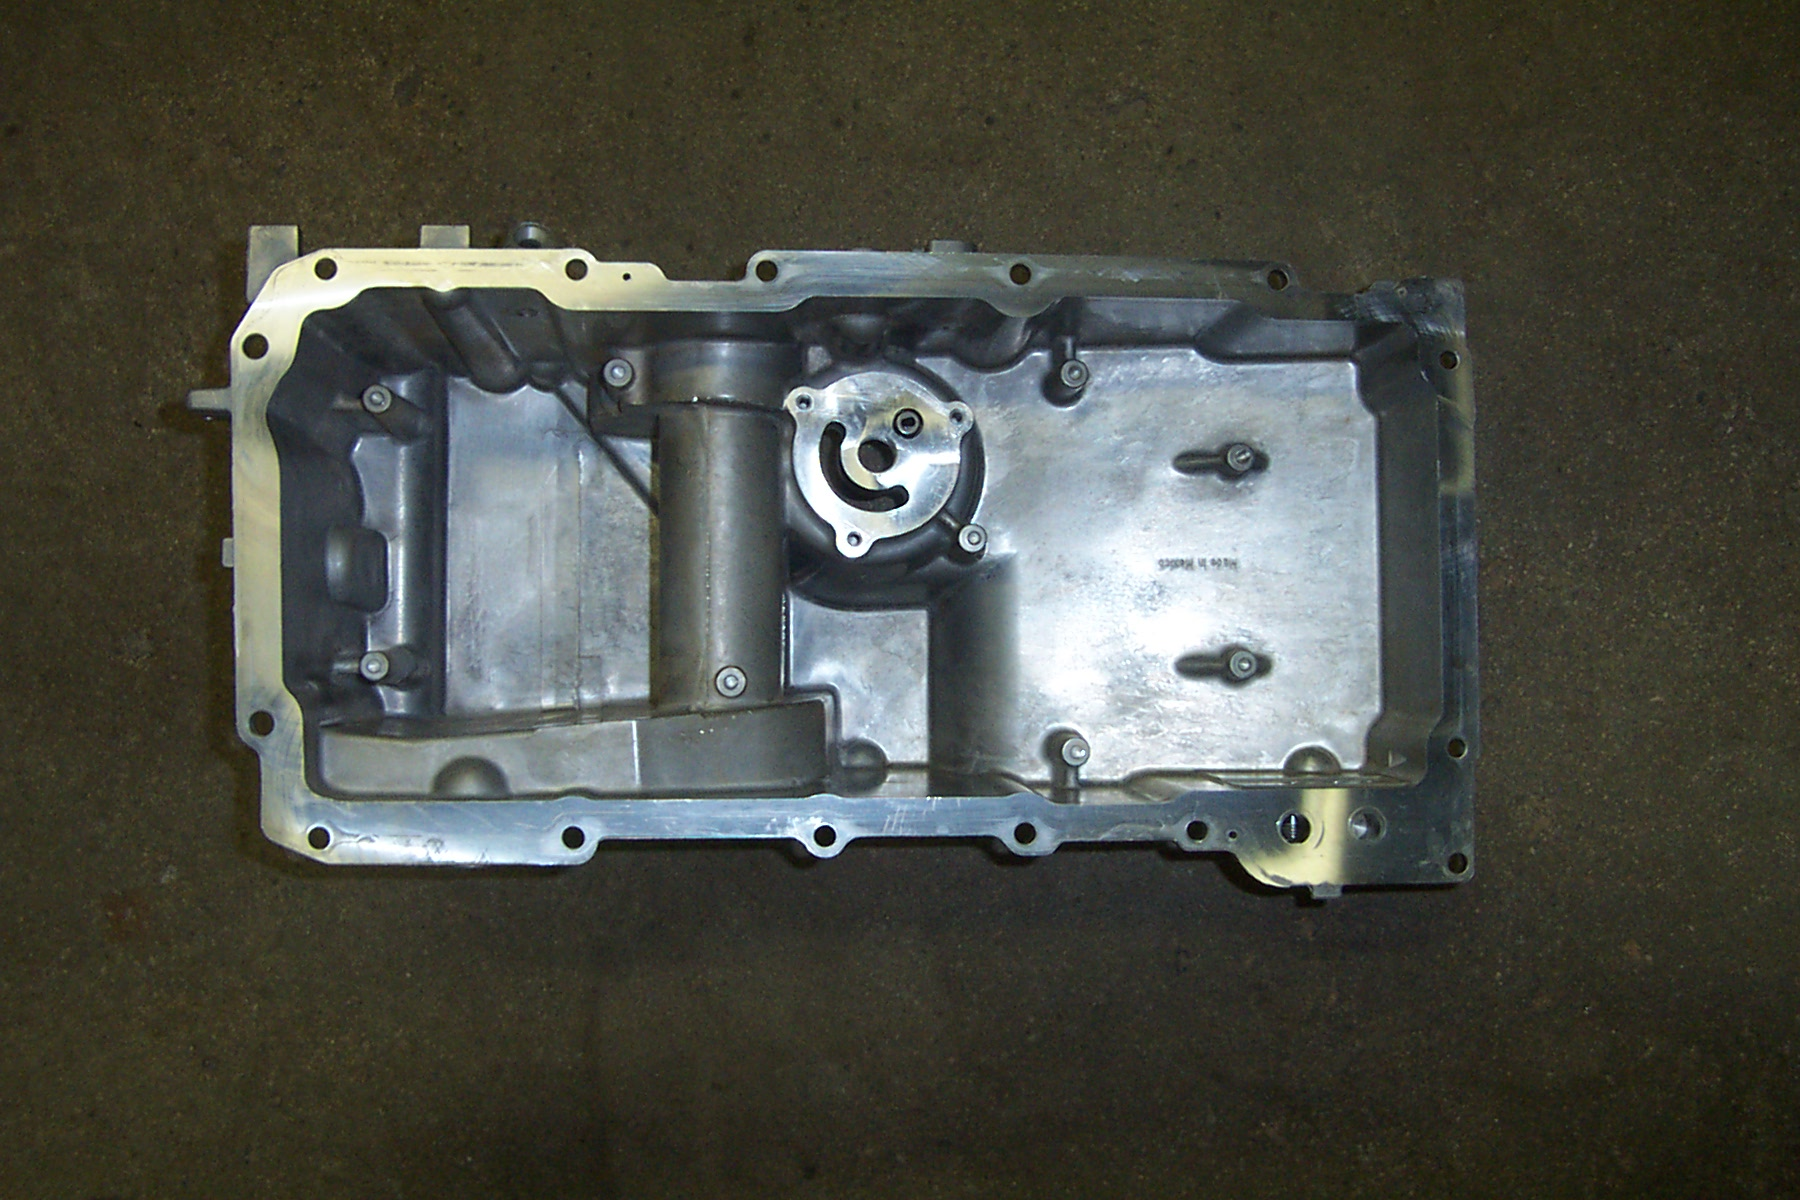 Oil Pan Modifications-dcp_2546.jpg